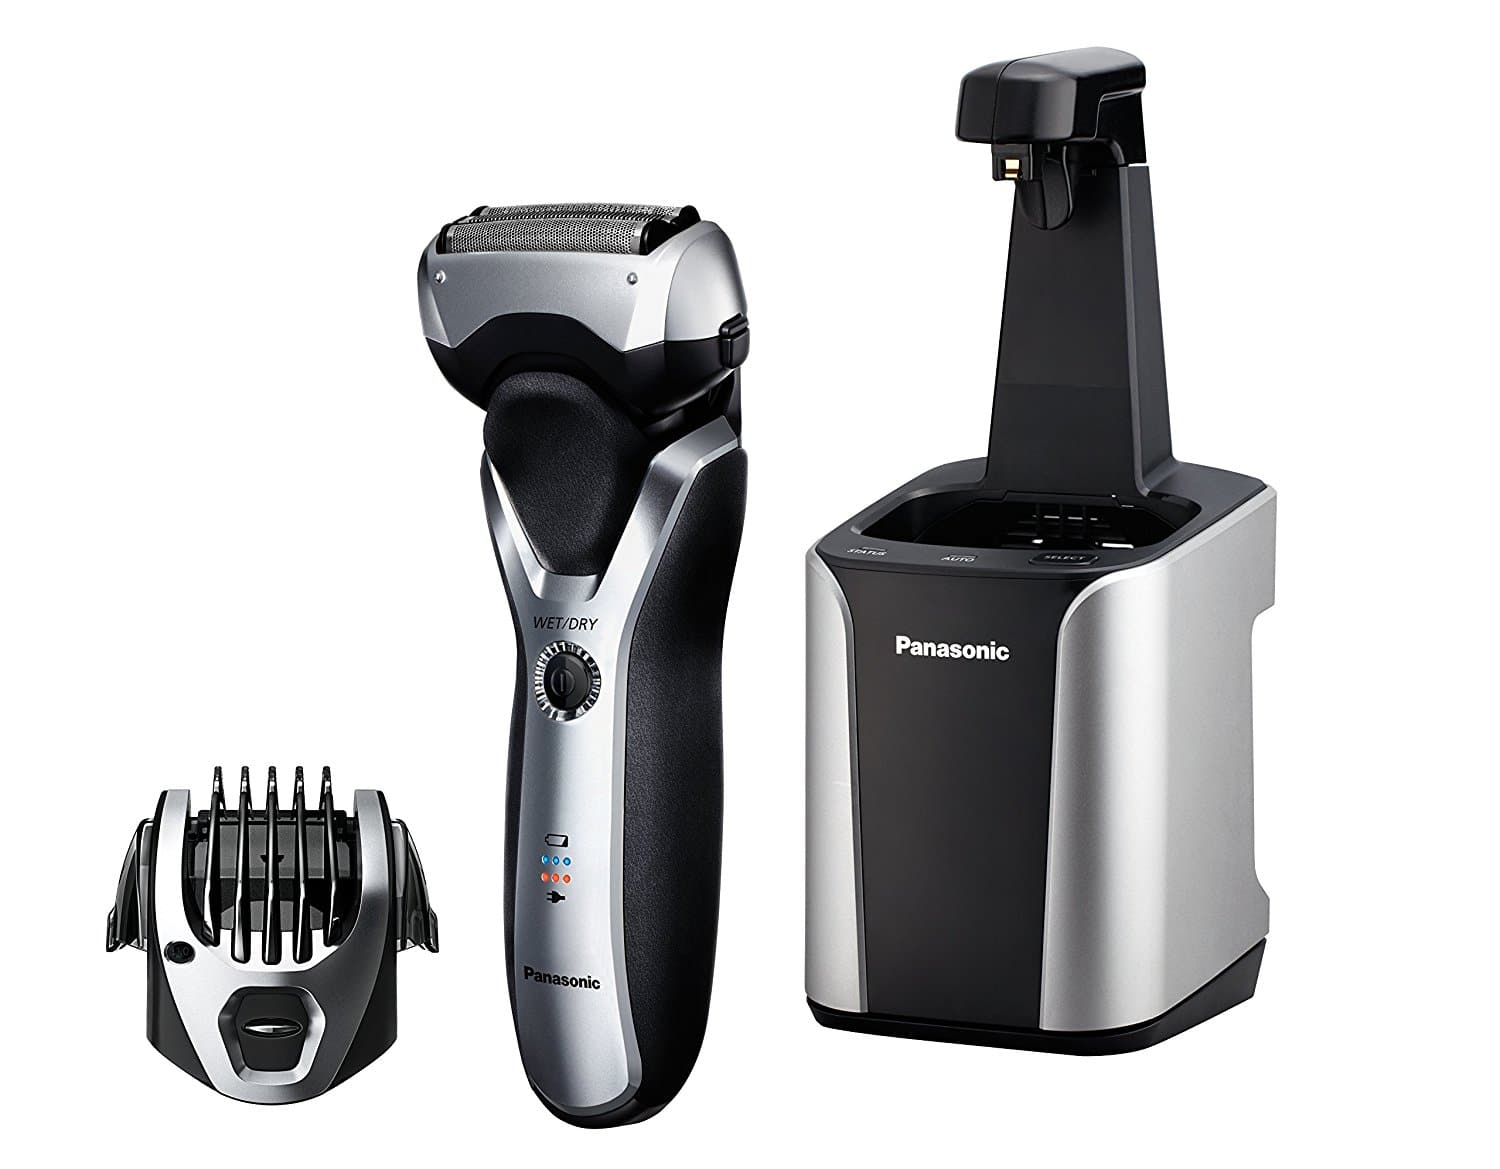 Panasonic ES-RT97-S Arc3 Electric Razor, Men's 3-Blade Cordless with Wet/Dry Convenience, Comb Attachment for Trimming w/ Automatic Clean & Charge Station $53.99 AC Shipped